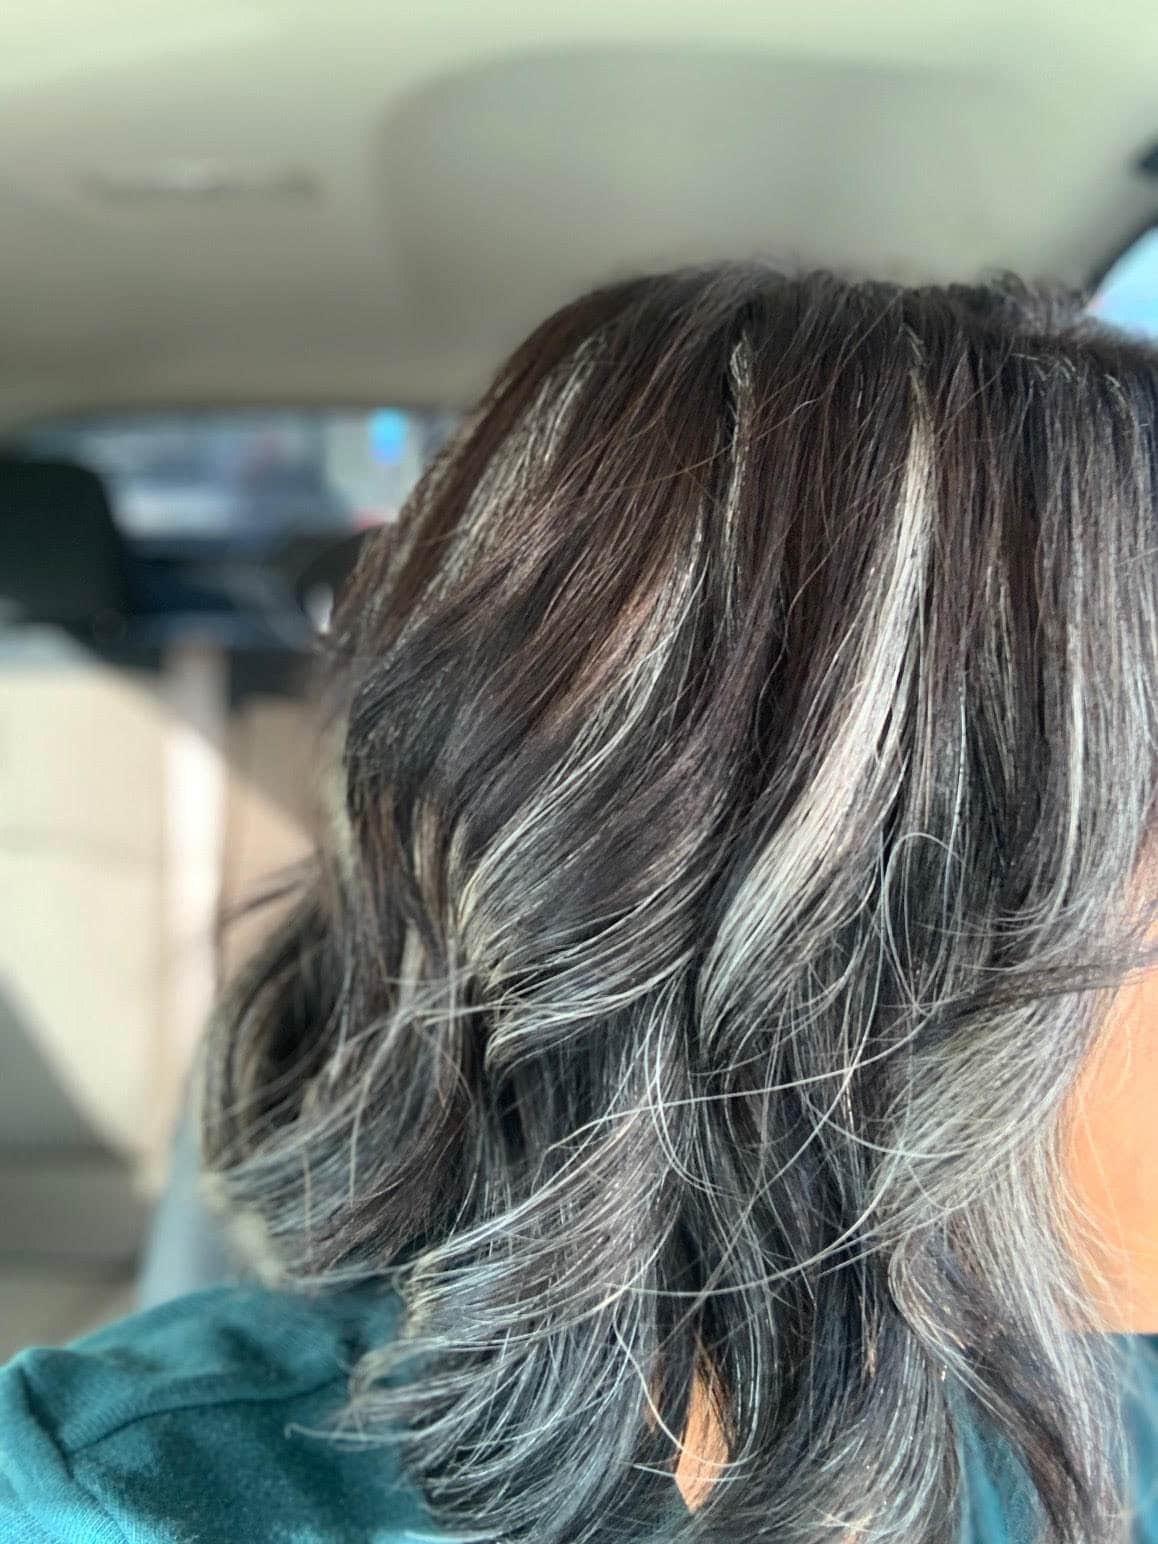 Image of woman long hair going gray